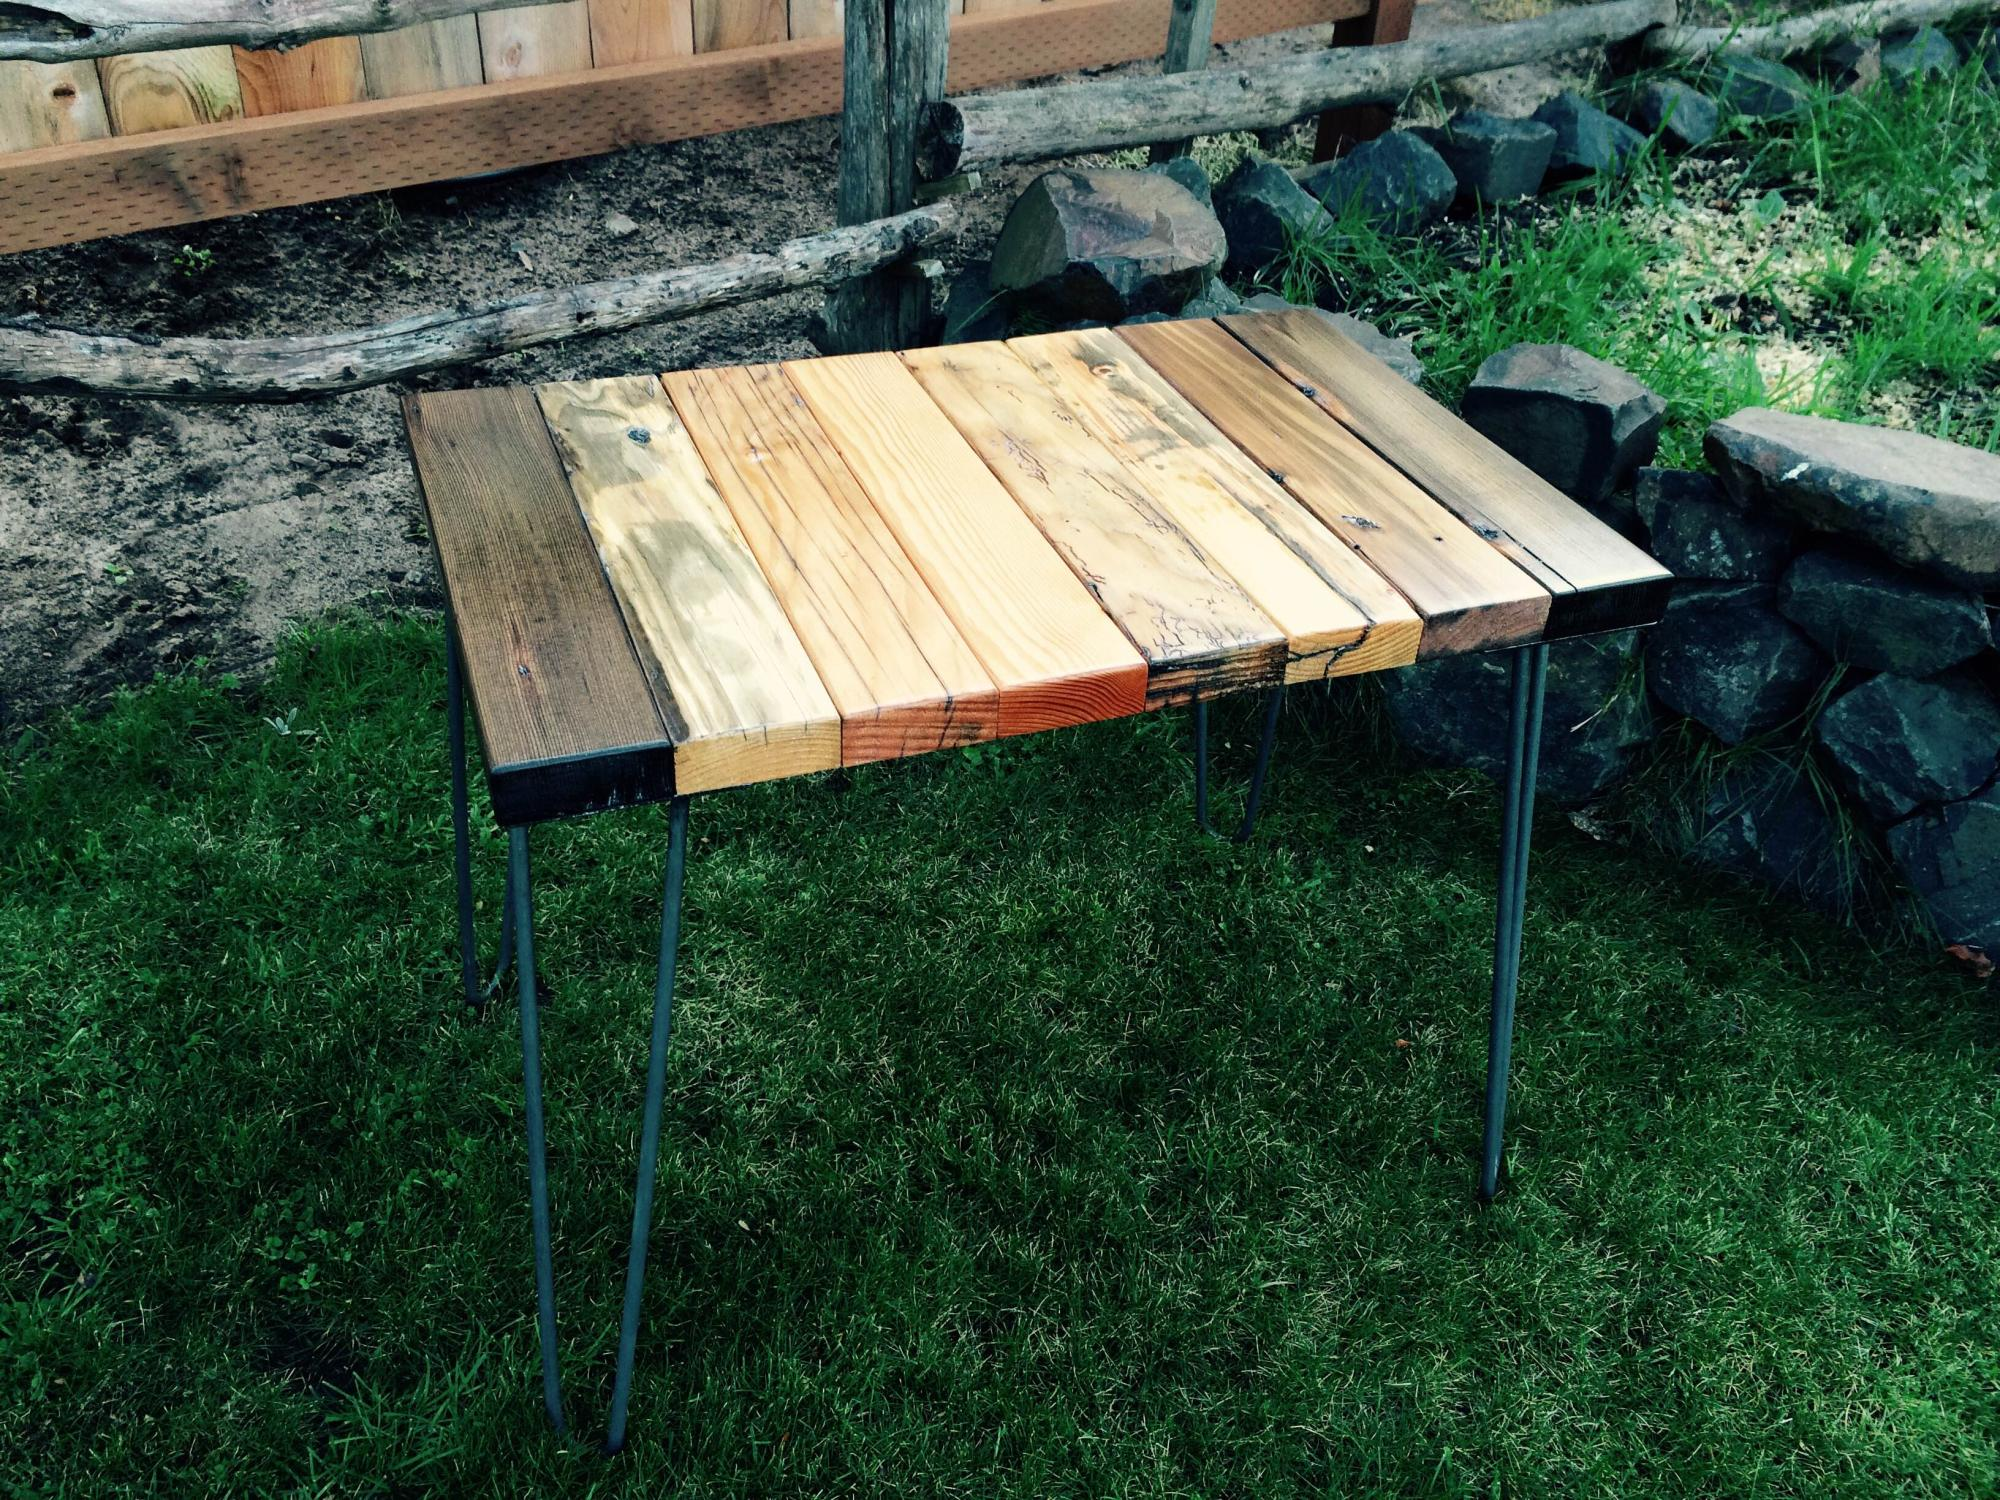 Mixed wood drift lumber end table w/steel hairpin legs.  24Lx16Wx20H  $275